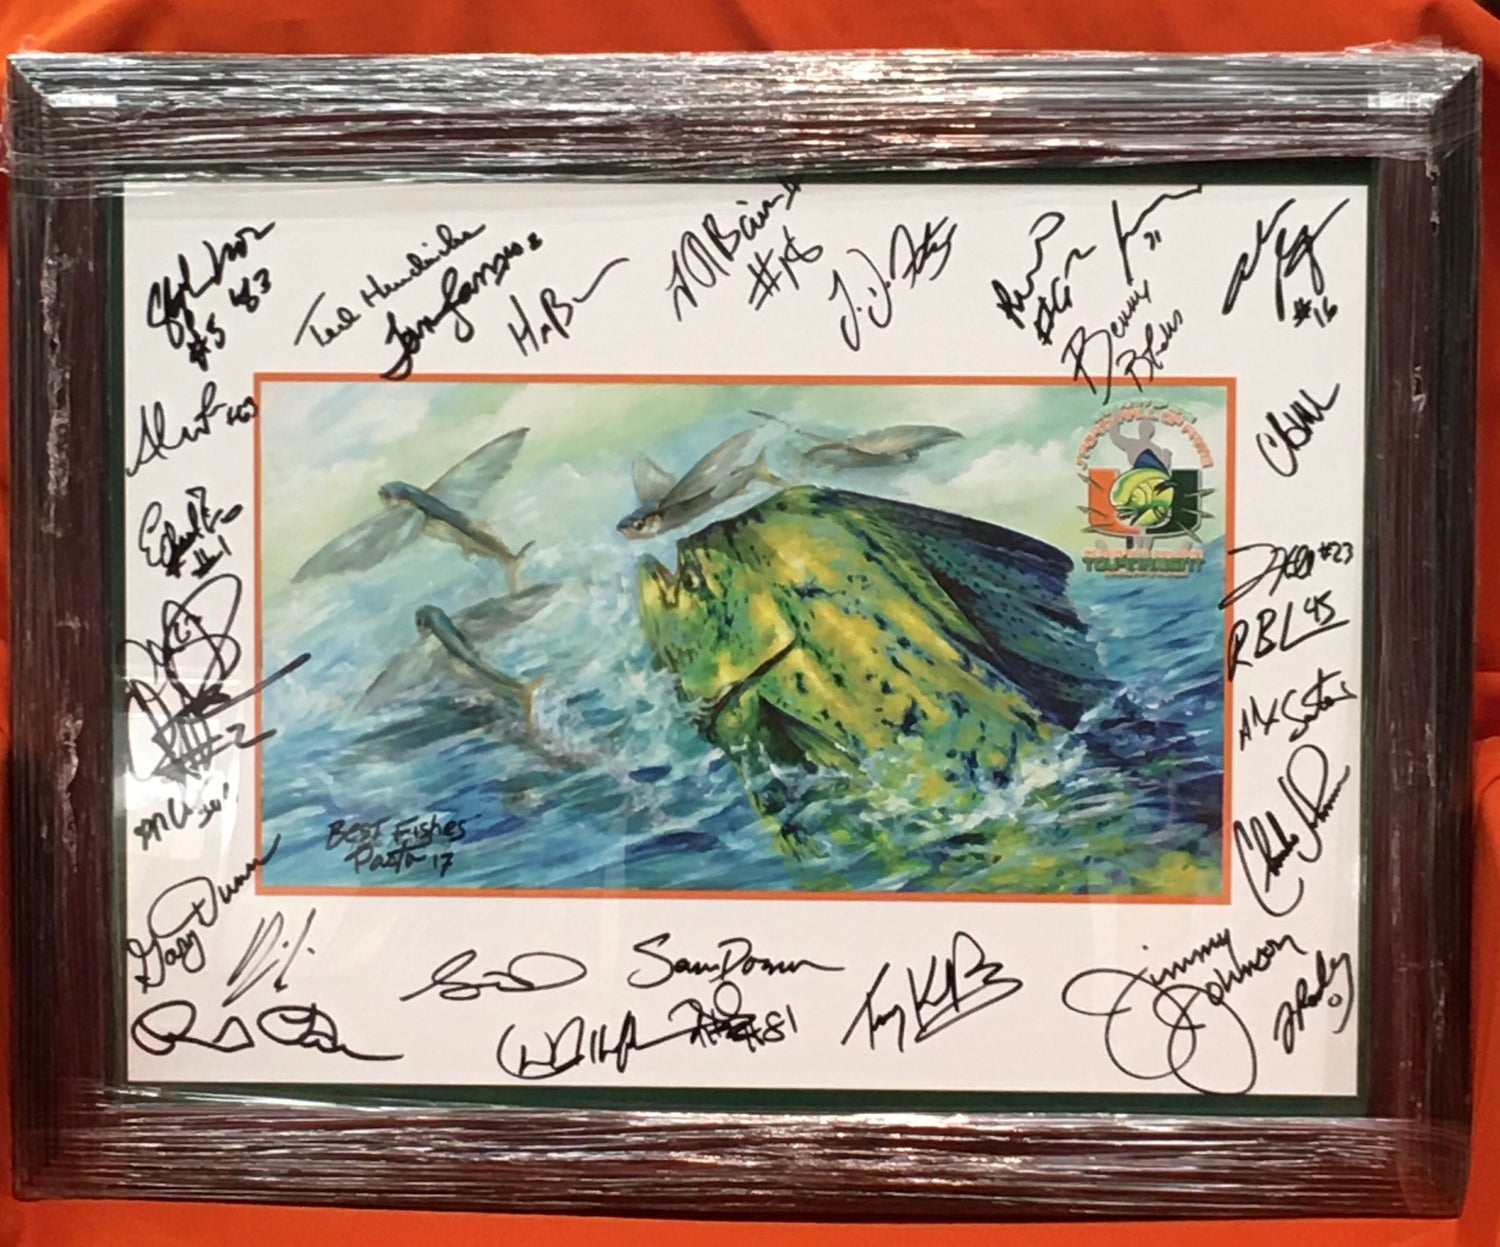 Image of 2017 U Fish Poster signed by 27 Canes Greats